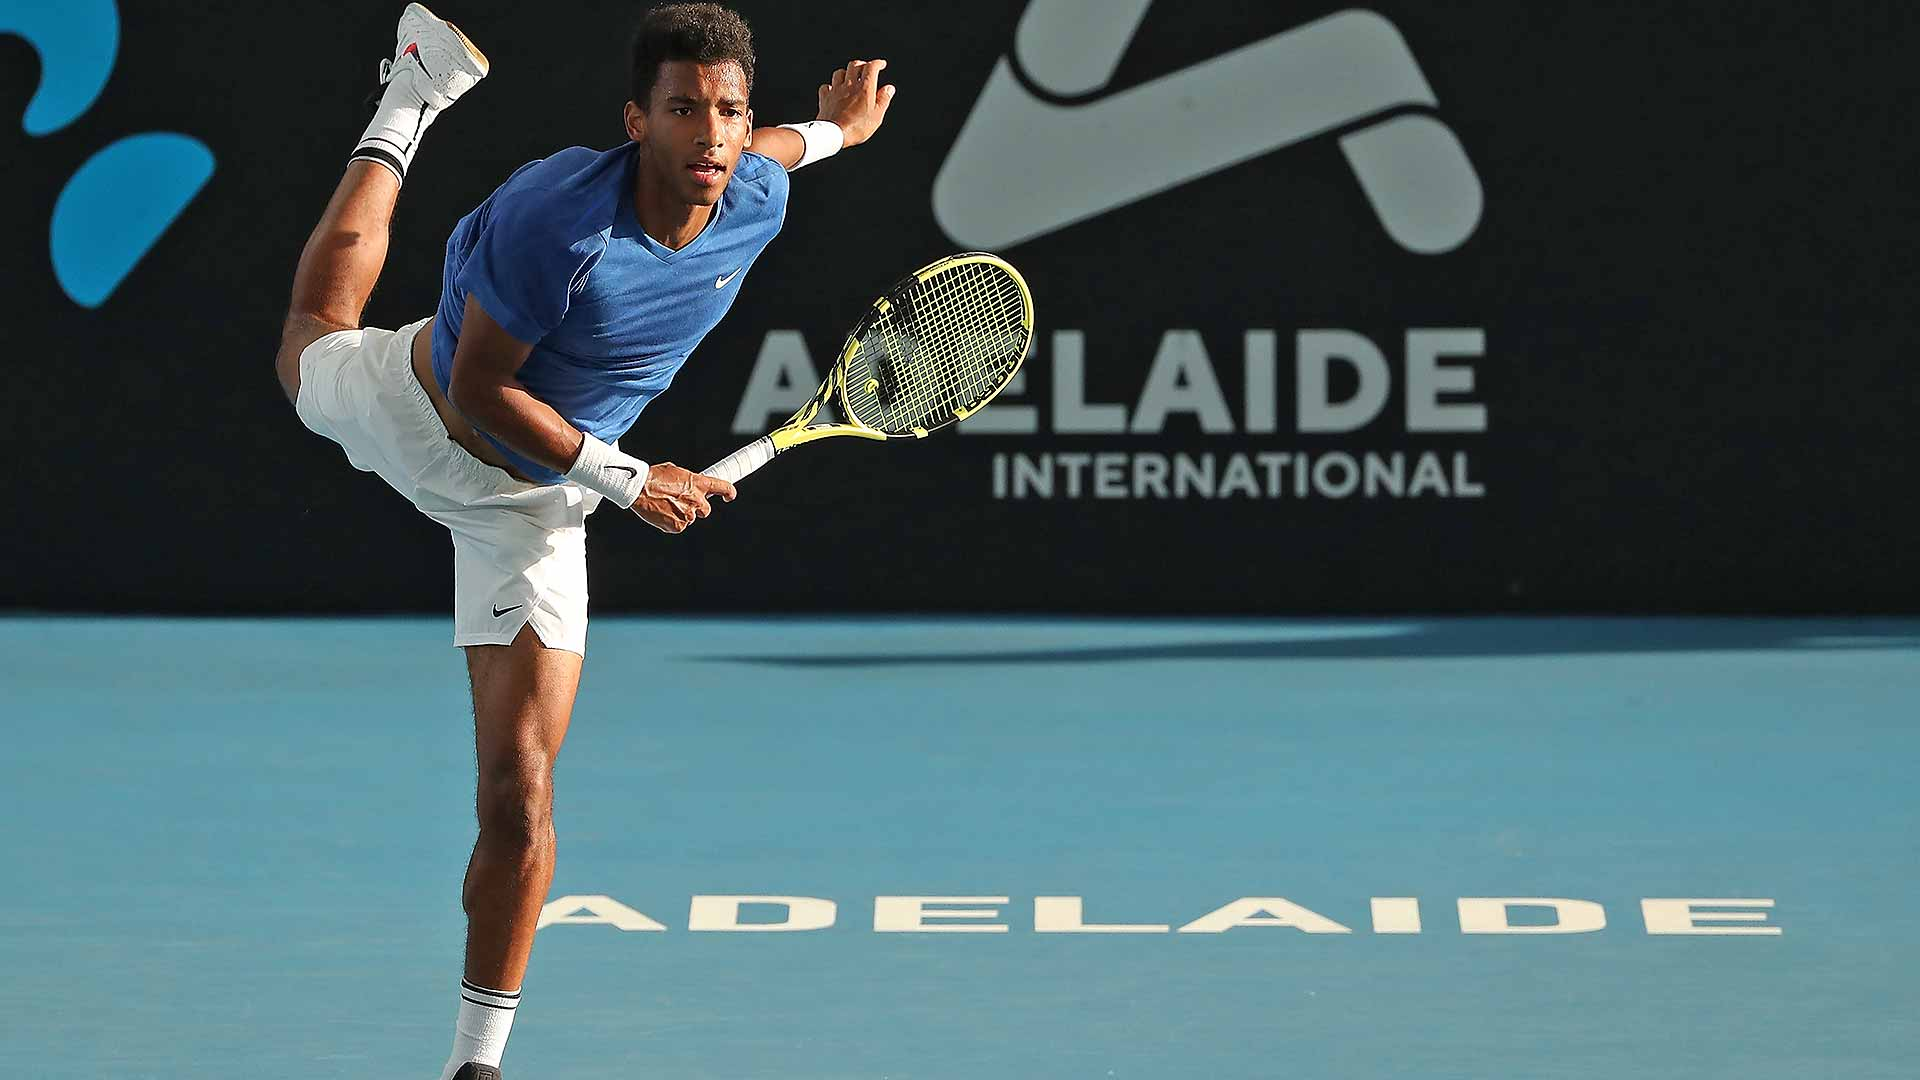 Felix Auger-Aliassime will face Aussie Alex Bolt in the Adelaide International quarter-finals on Thursday.